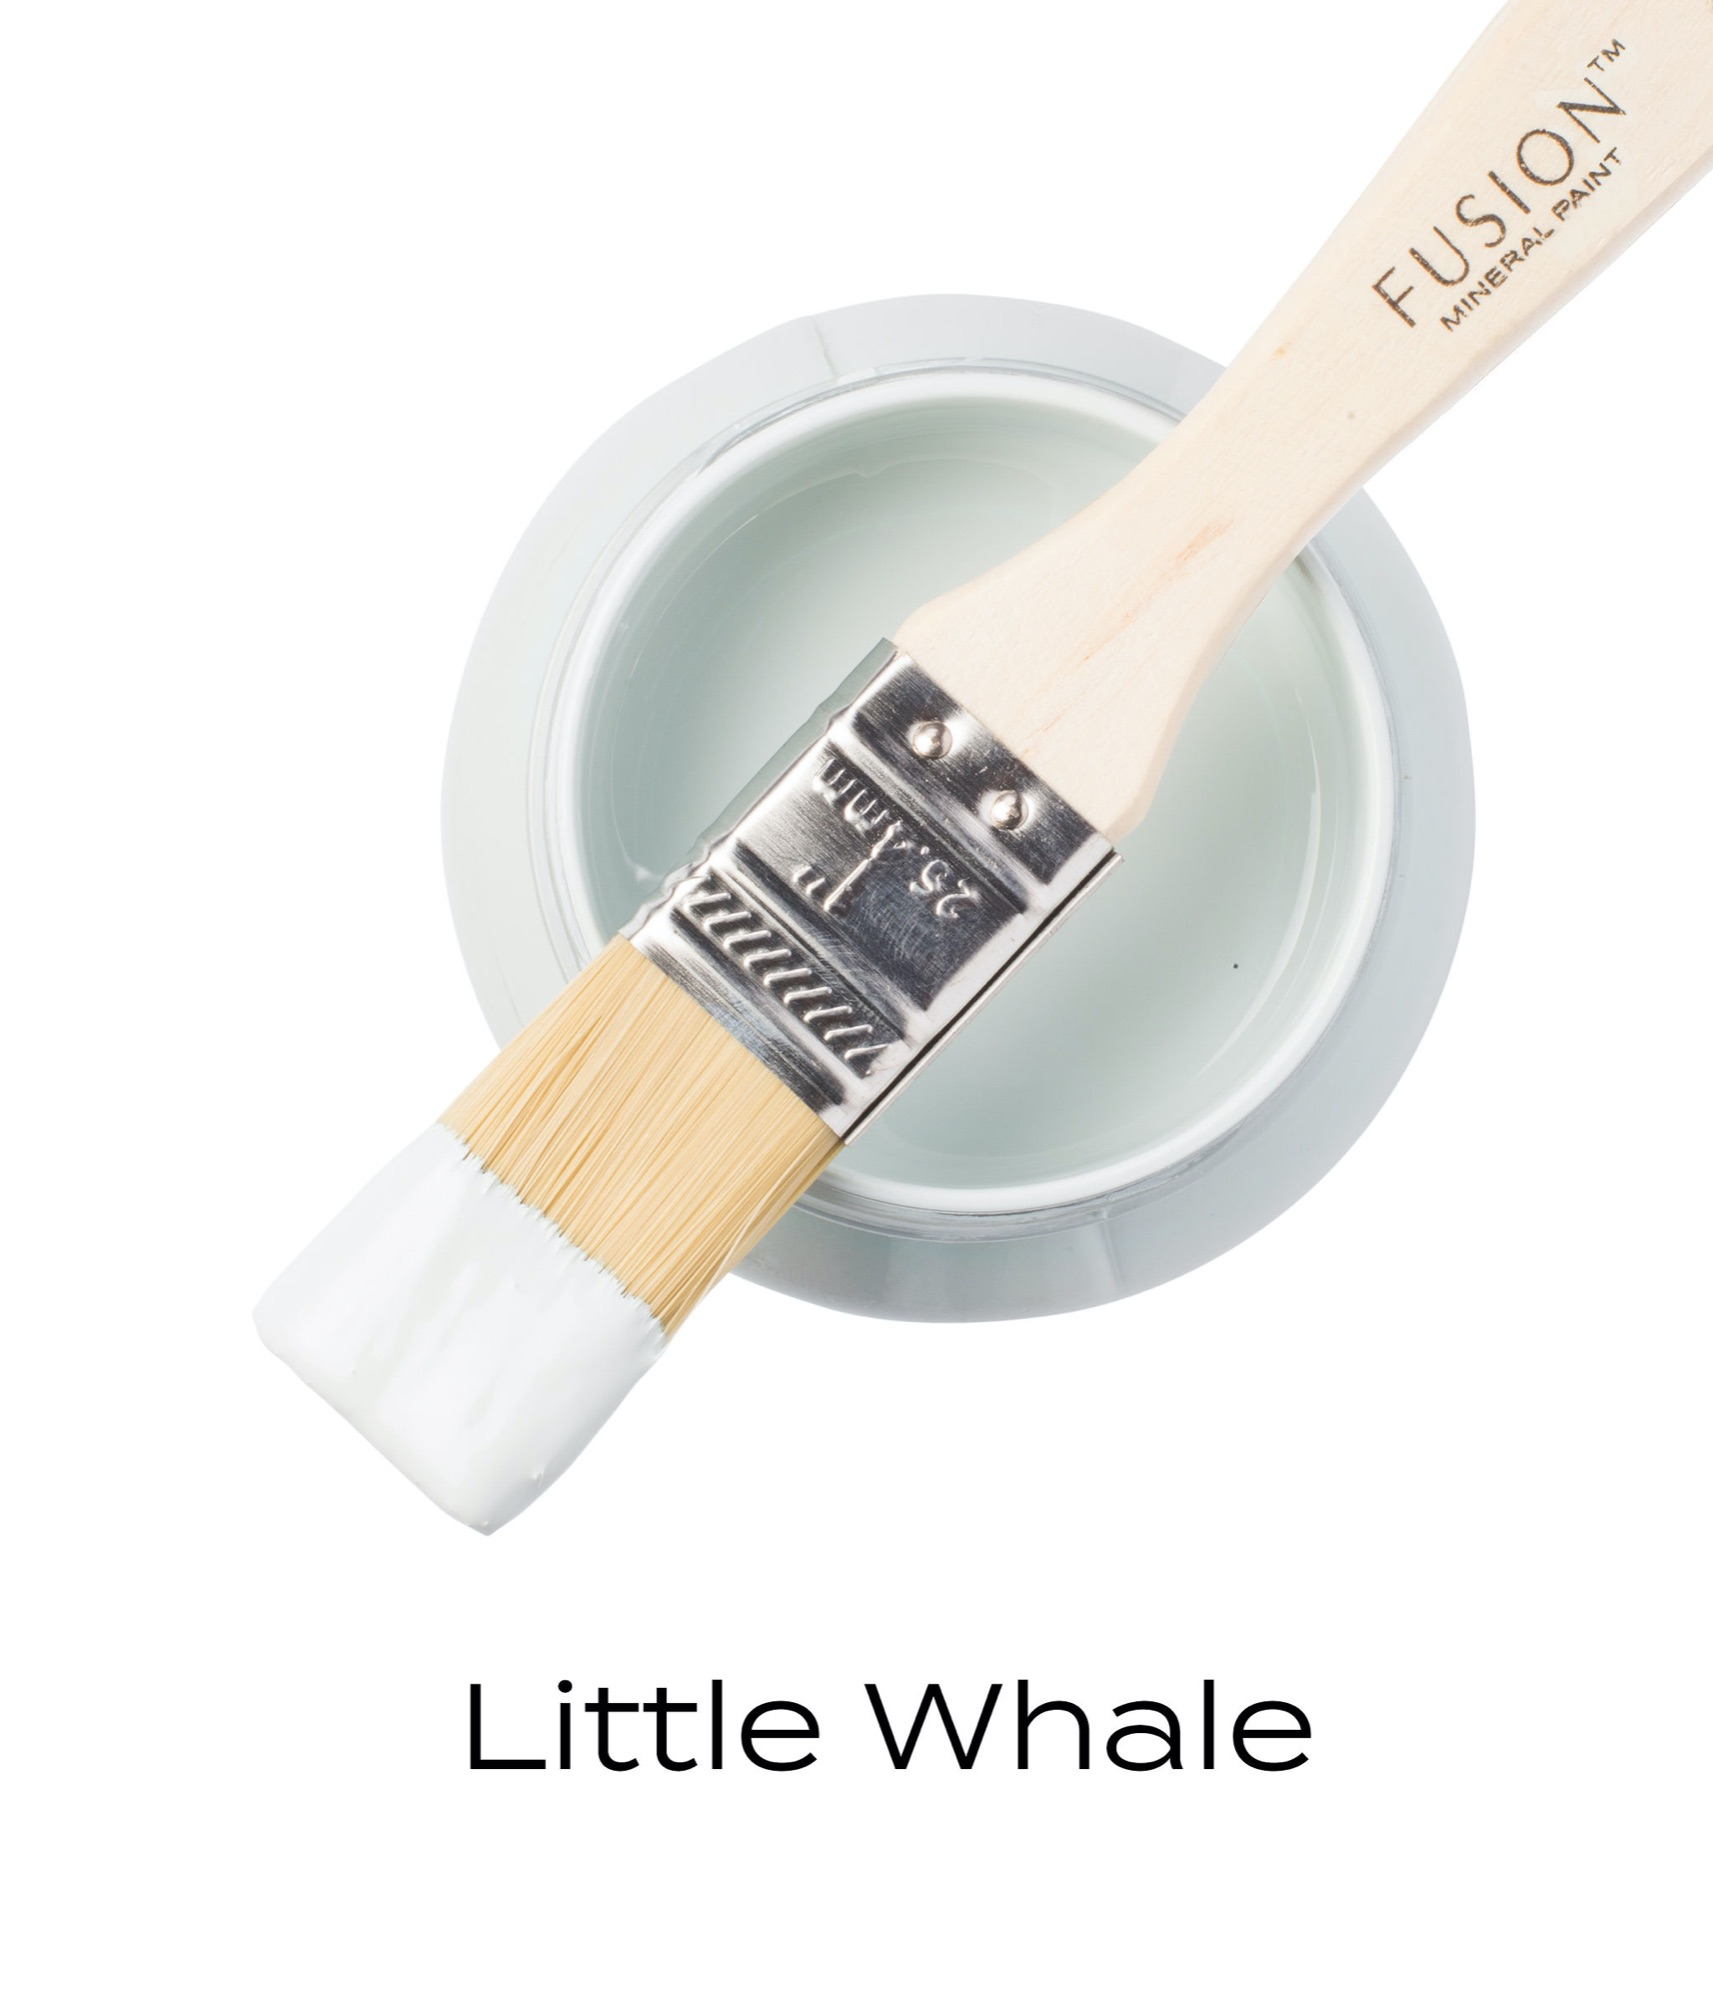 T1LITTLEWHALE